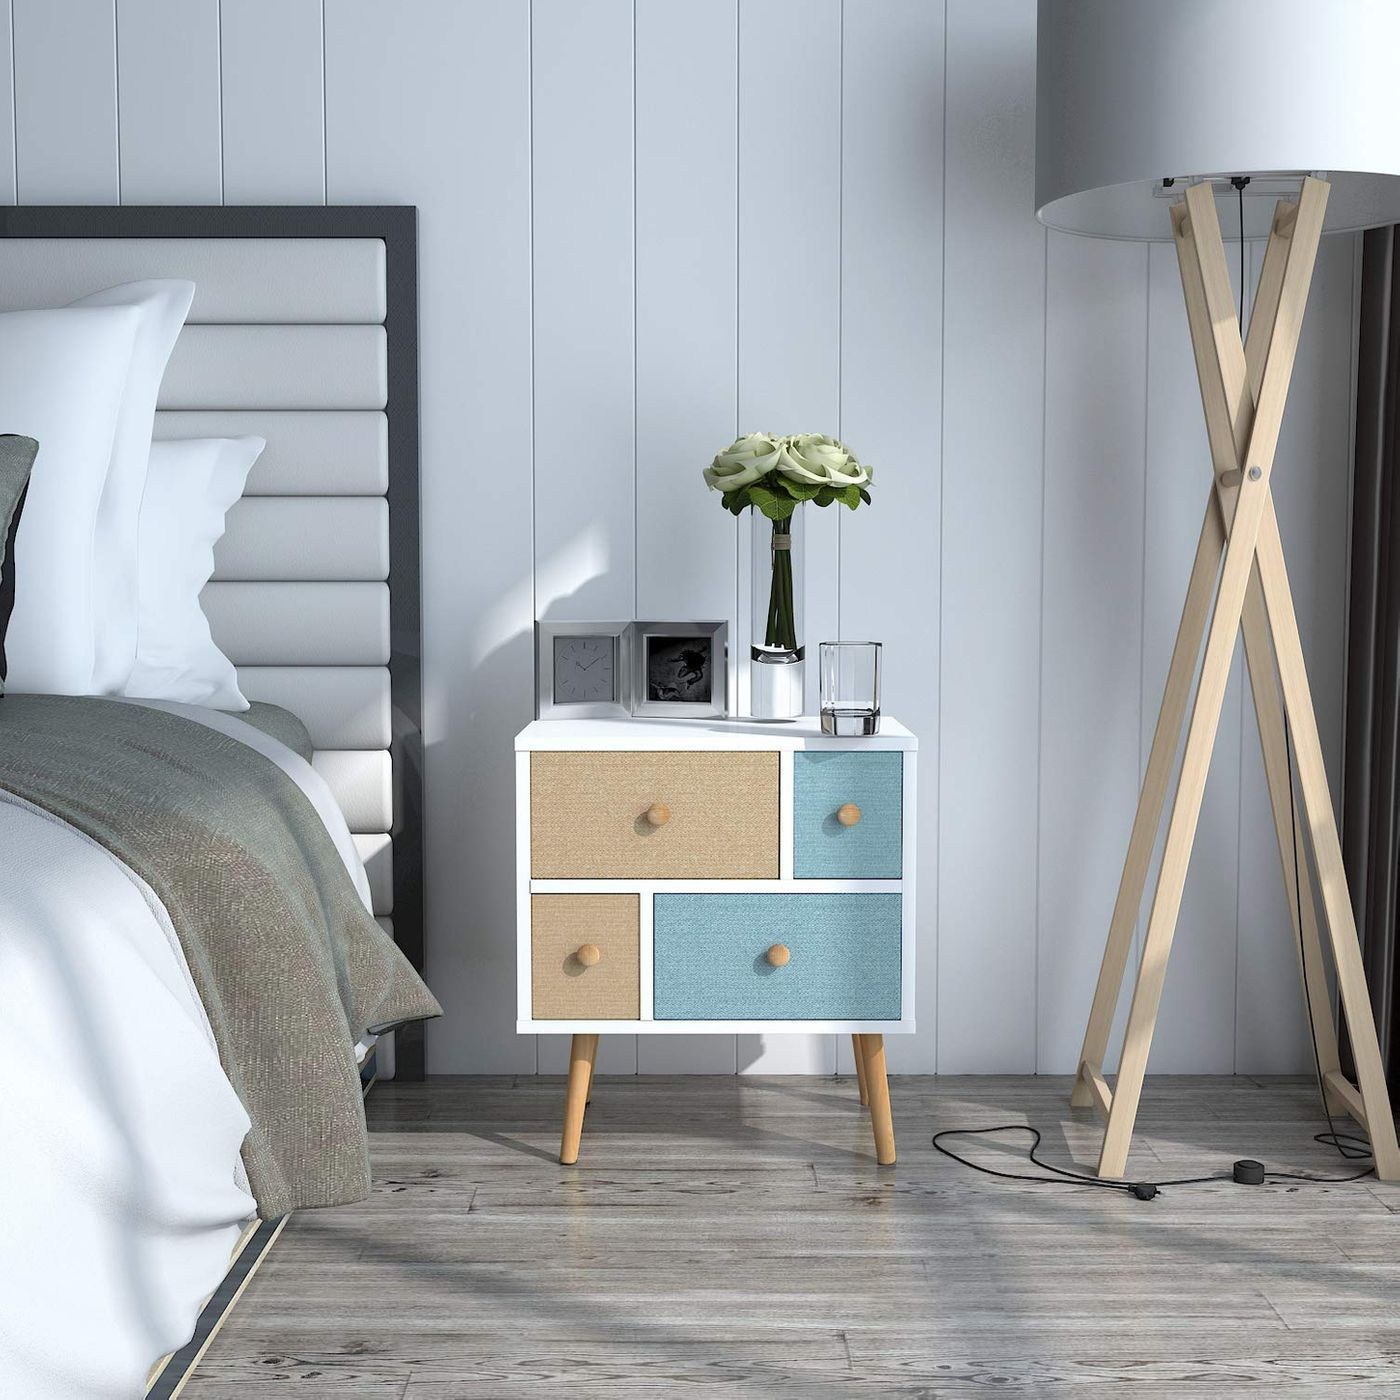 The Best Nightstands on Amazon, According to Reviewers in